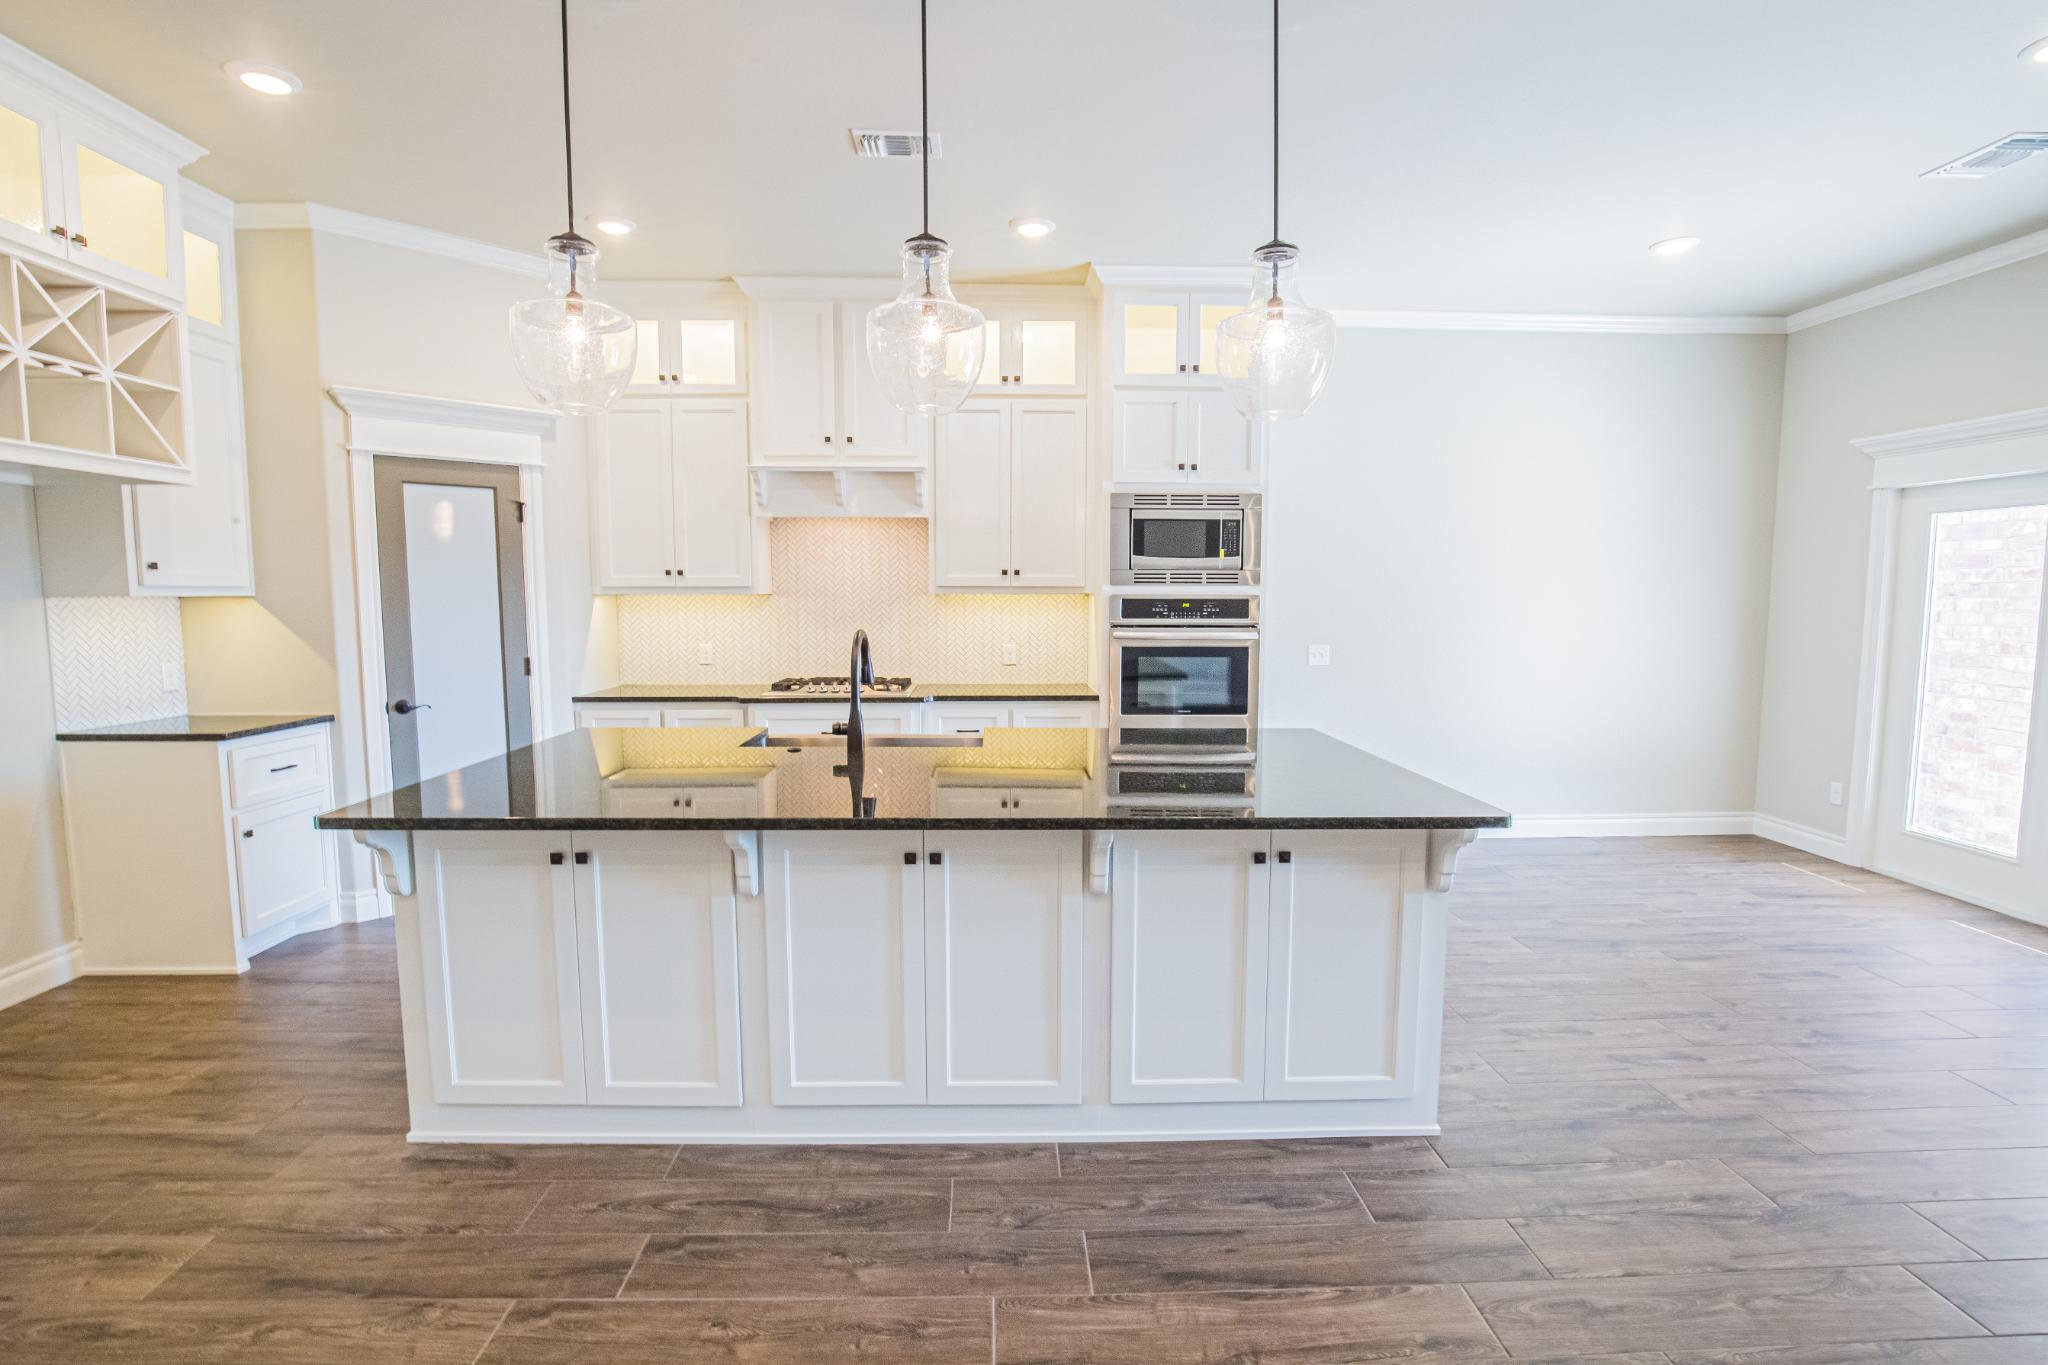 Kitchen featured in the Shiloh Plus Half Bath By Homes By Taber in Oklahoma City, OK